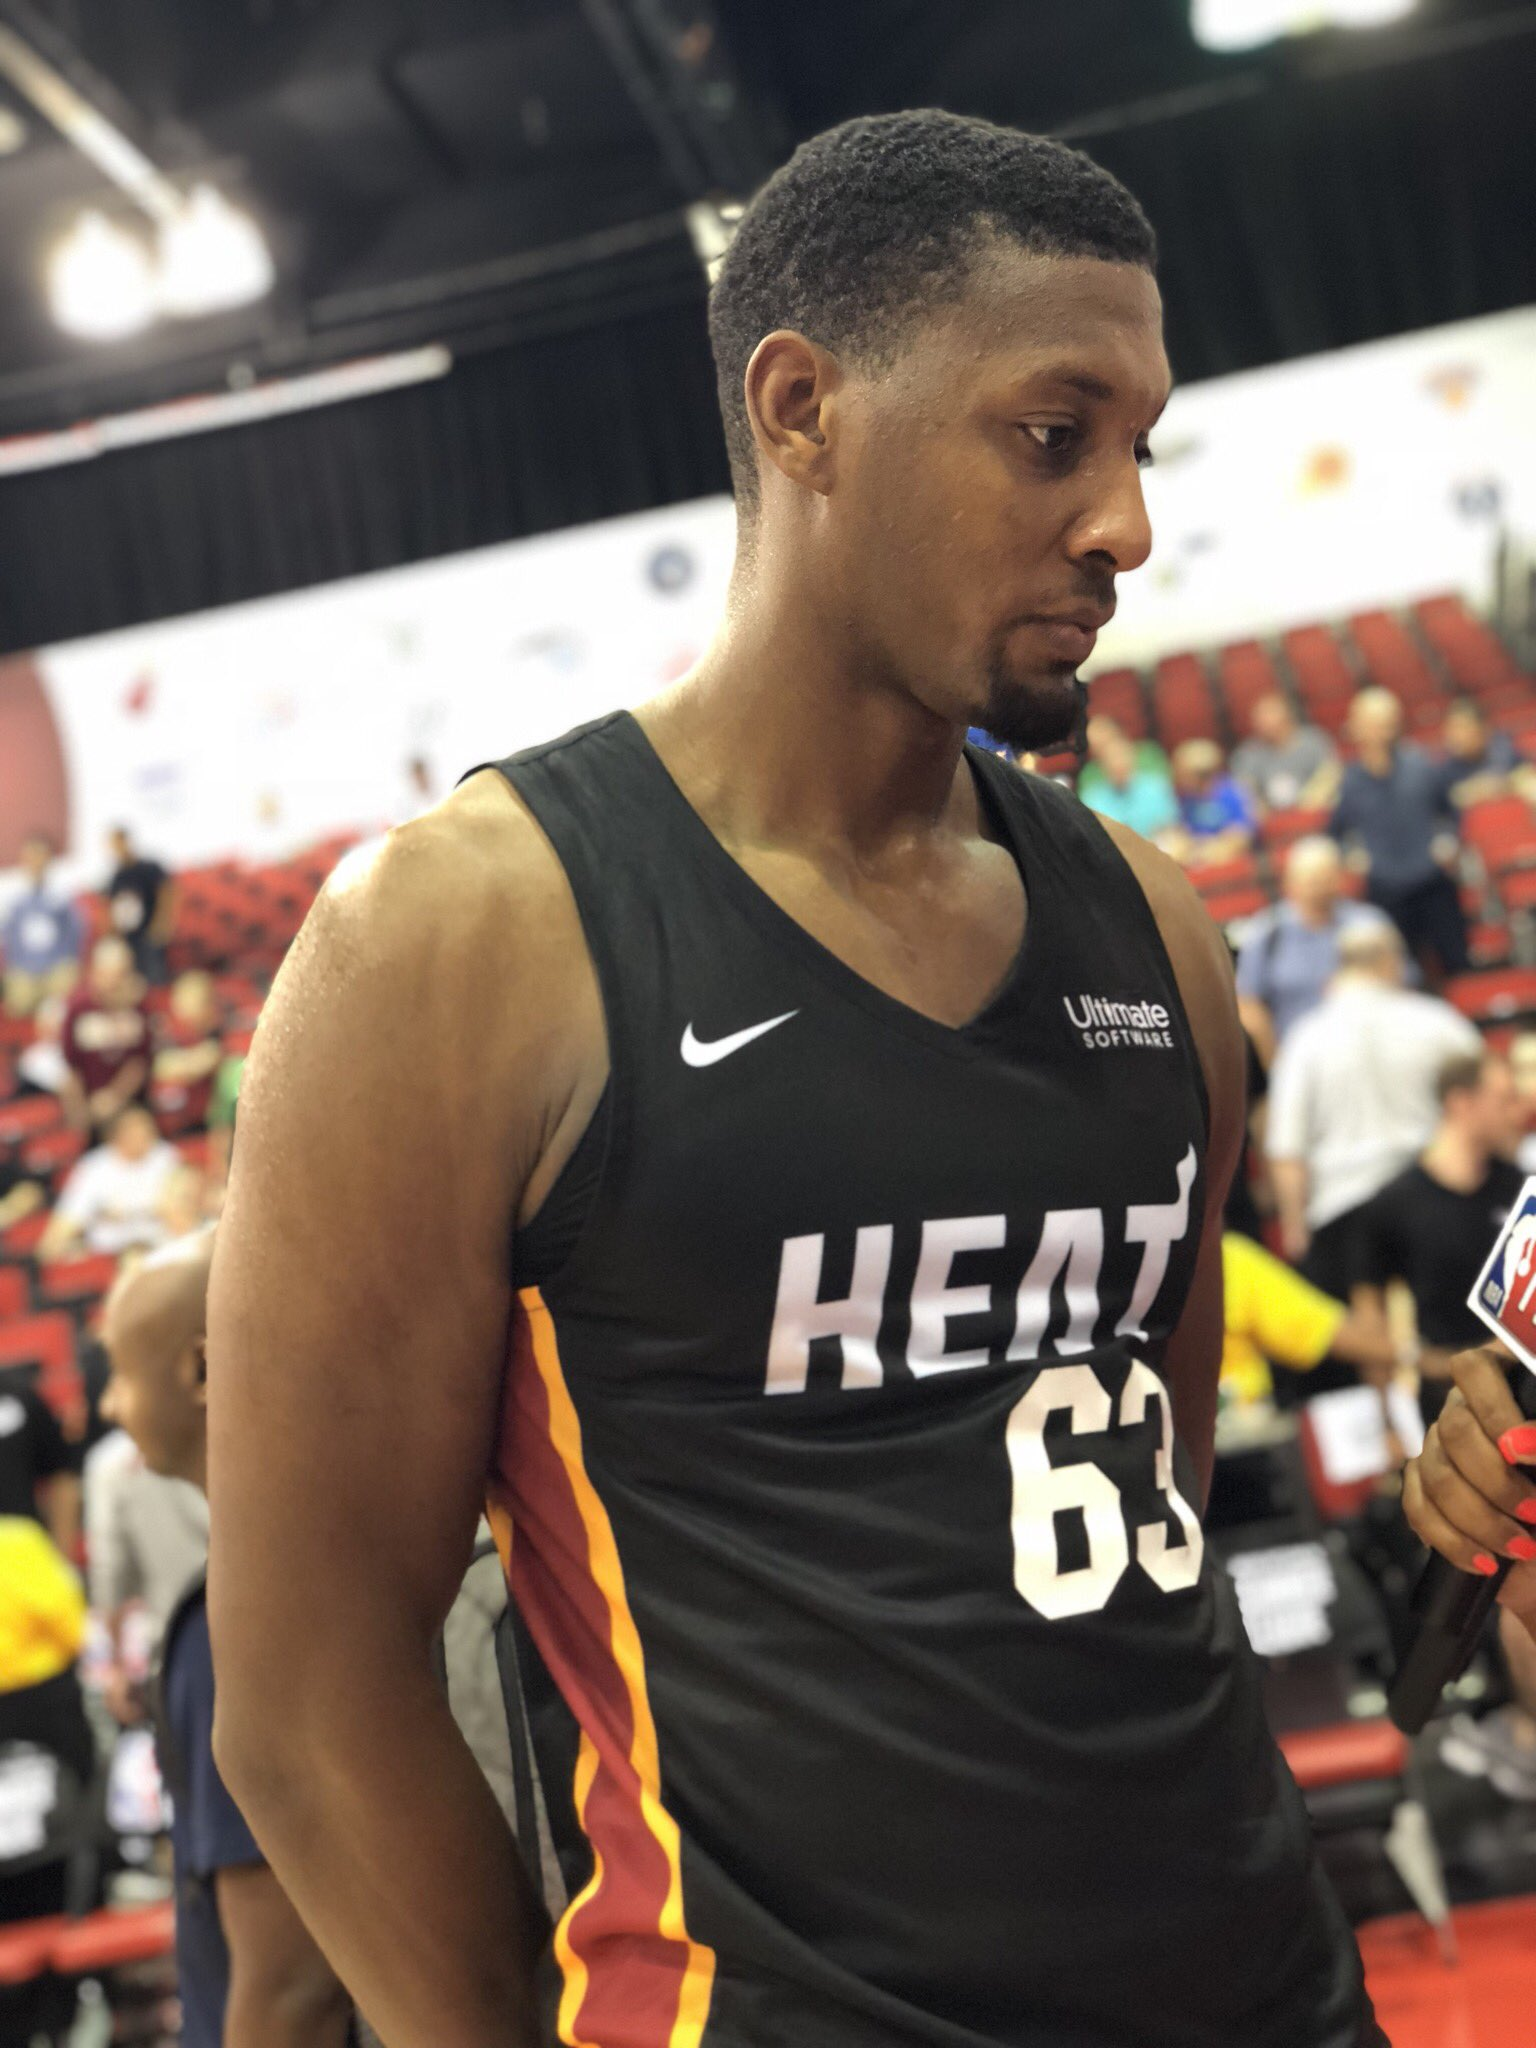 The @MiamiHEAT win behind 31 points from Jarrod Jones! #NBASummer https://t.co/nR5HAAzmVR